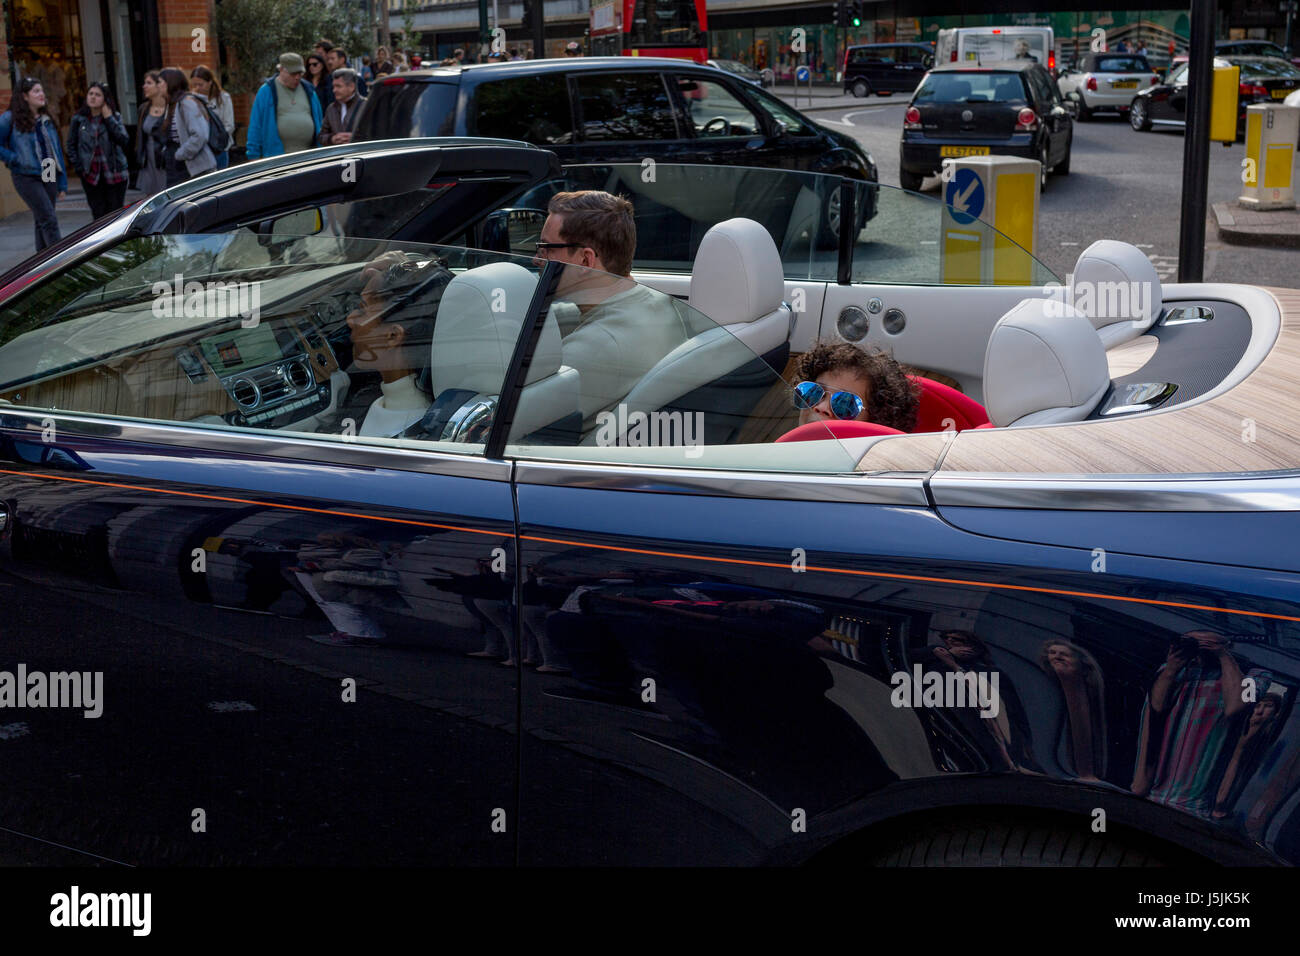 Wealthy adults and a child wearing sunglasses who smiles in the back of an open-top car remaining stationary at - Stock Image